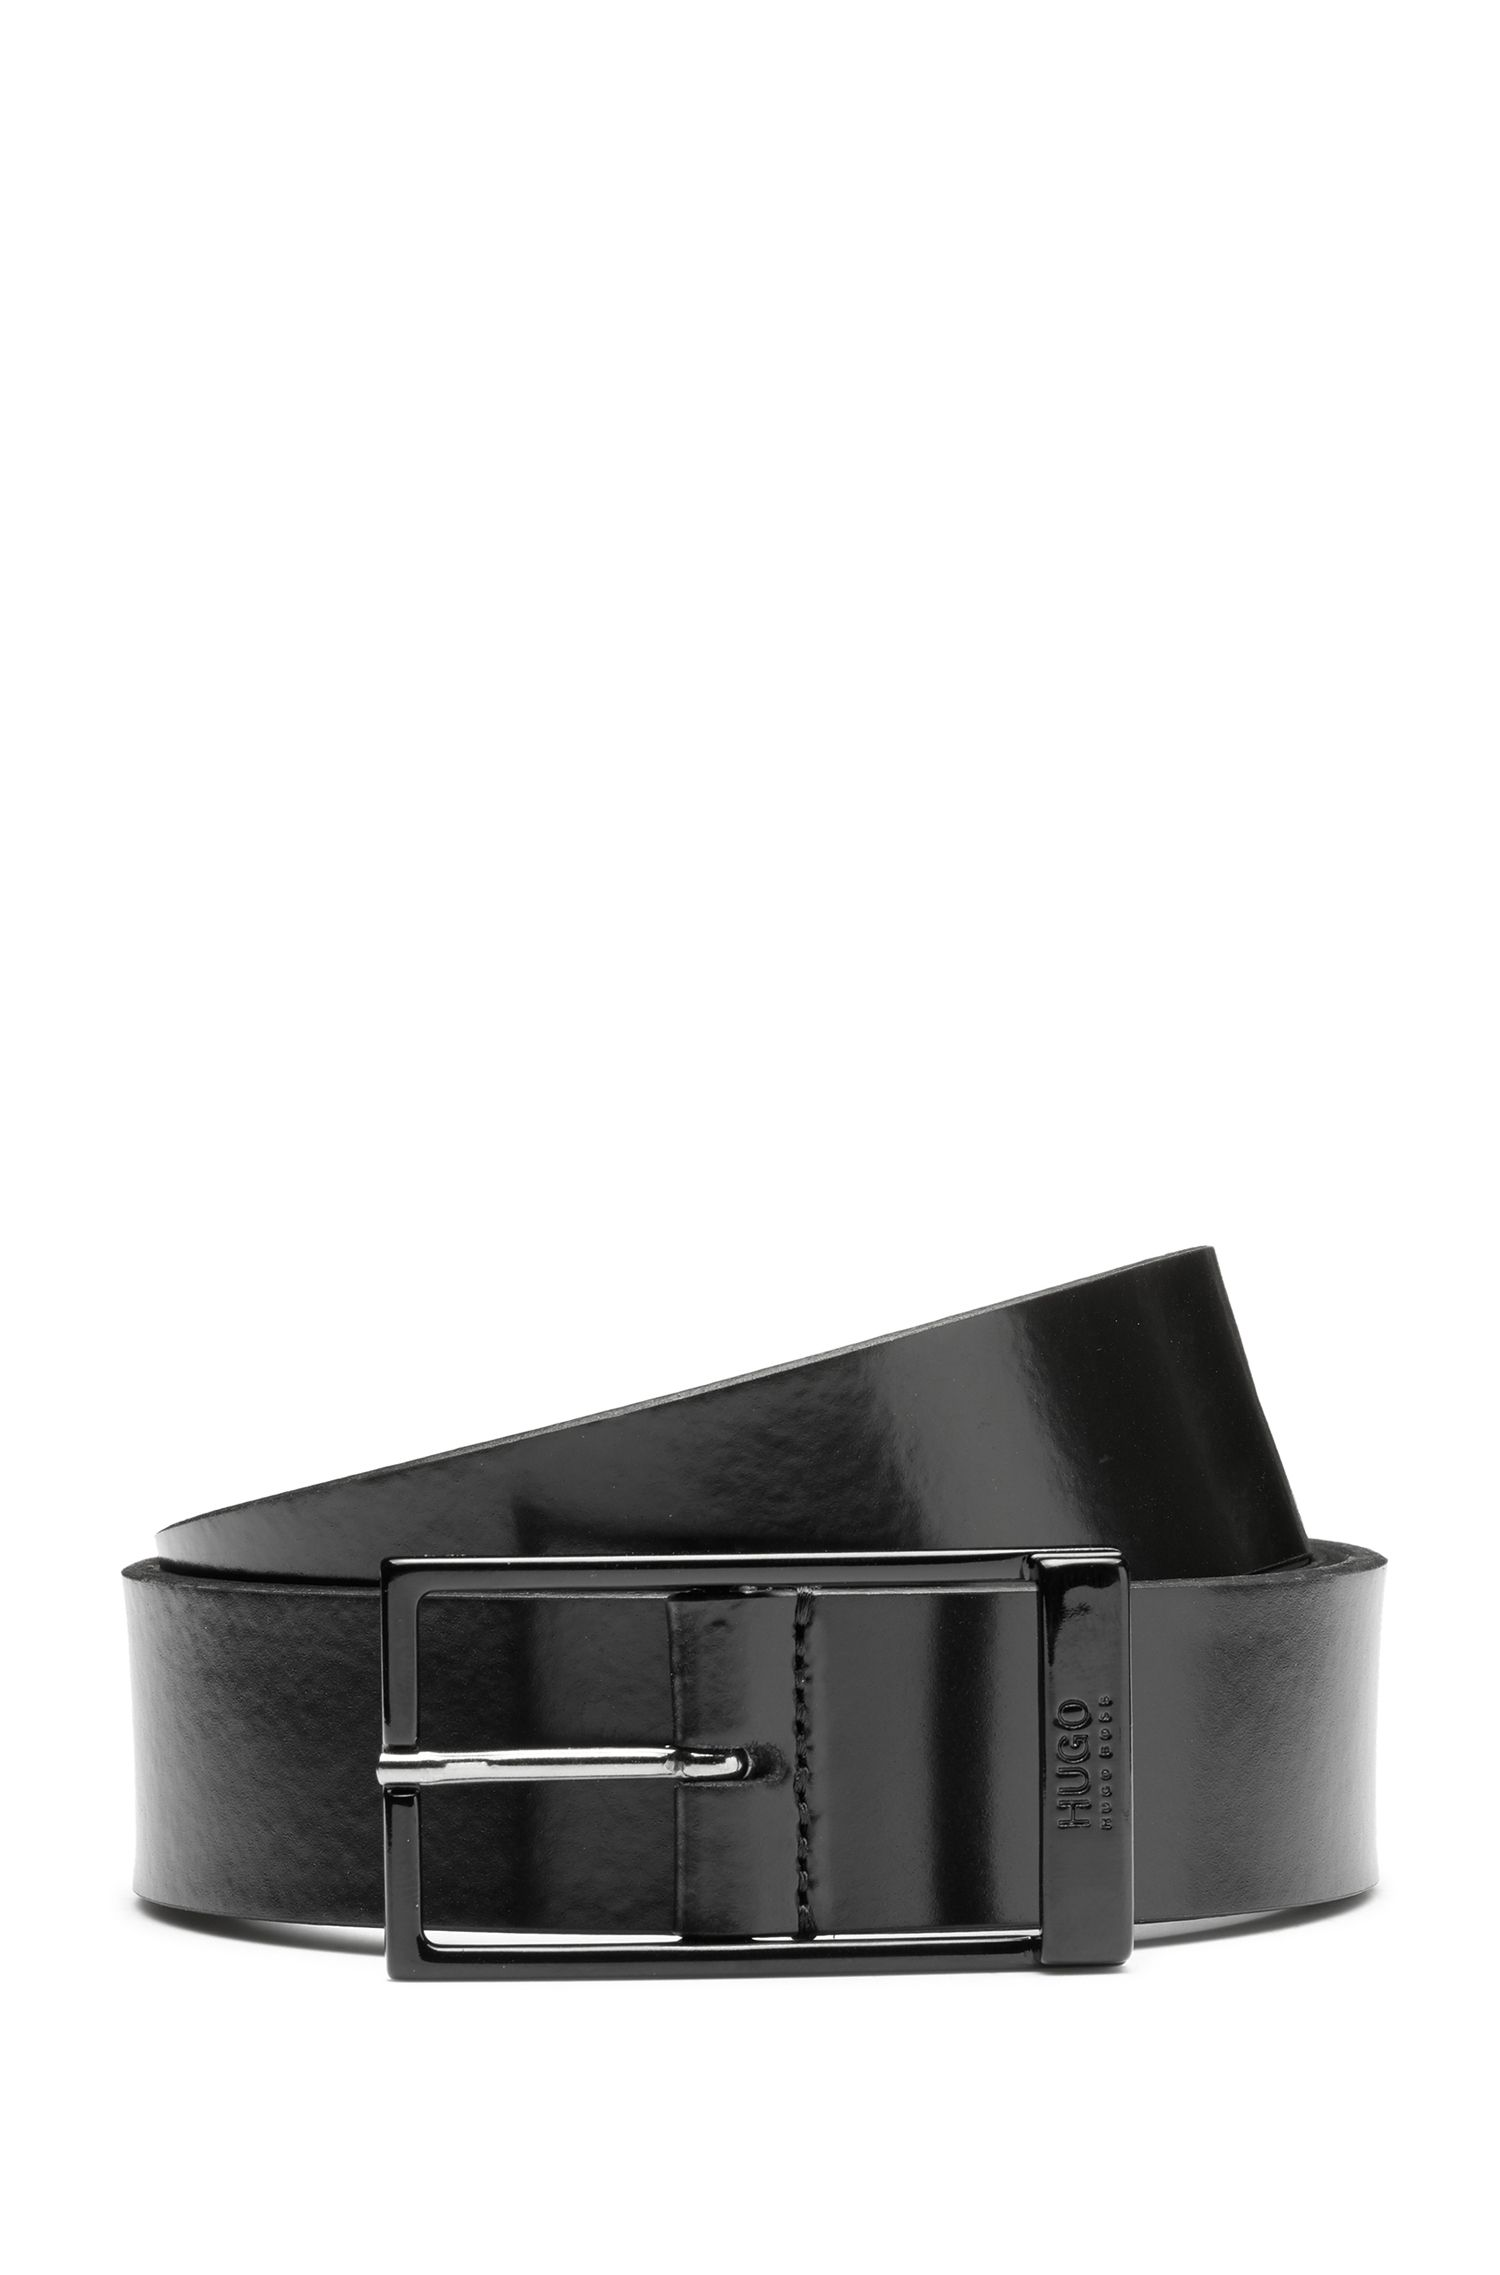 Italian-leather belt with black-varnished hardware